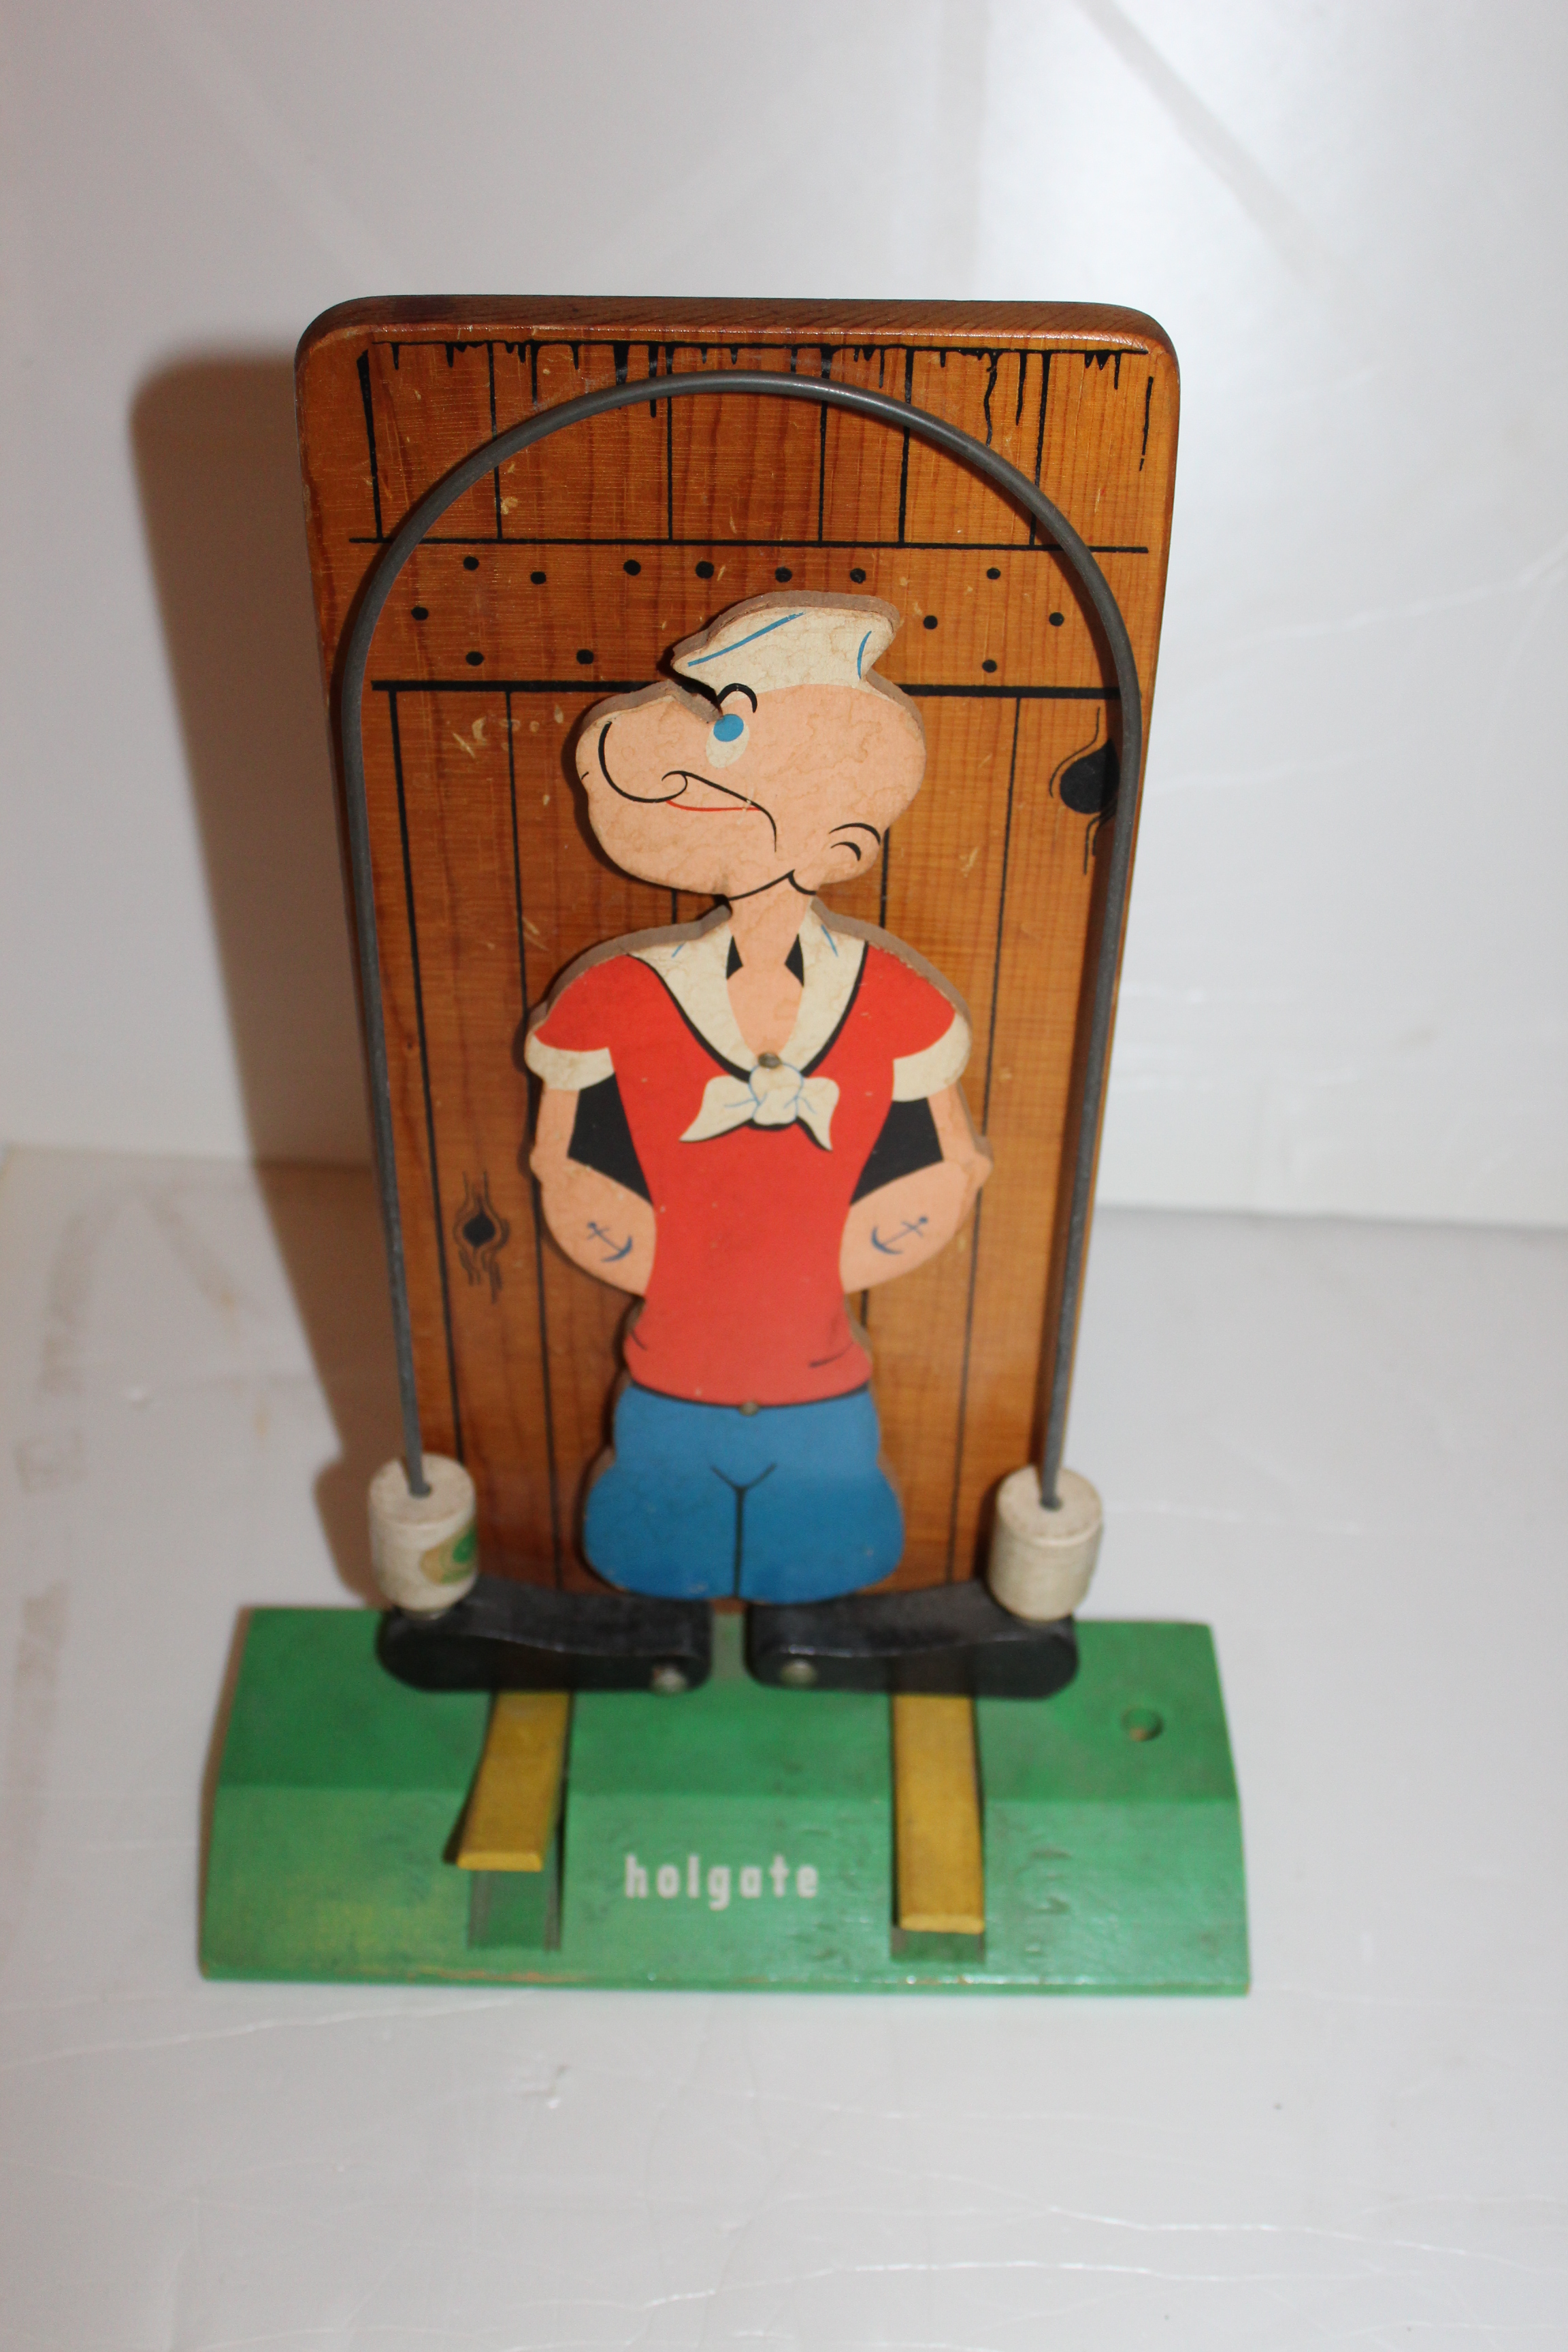 https://0201.nccdn.net/1_2/000/000/0a1/ca0/Popeye-weight-lifter.JPG